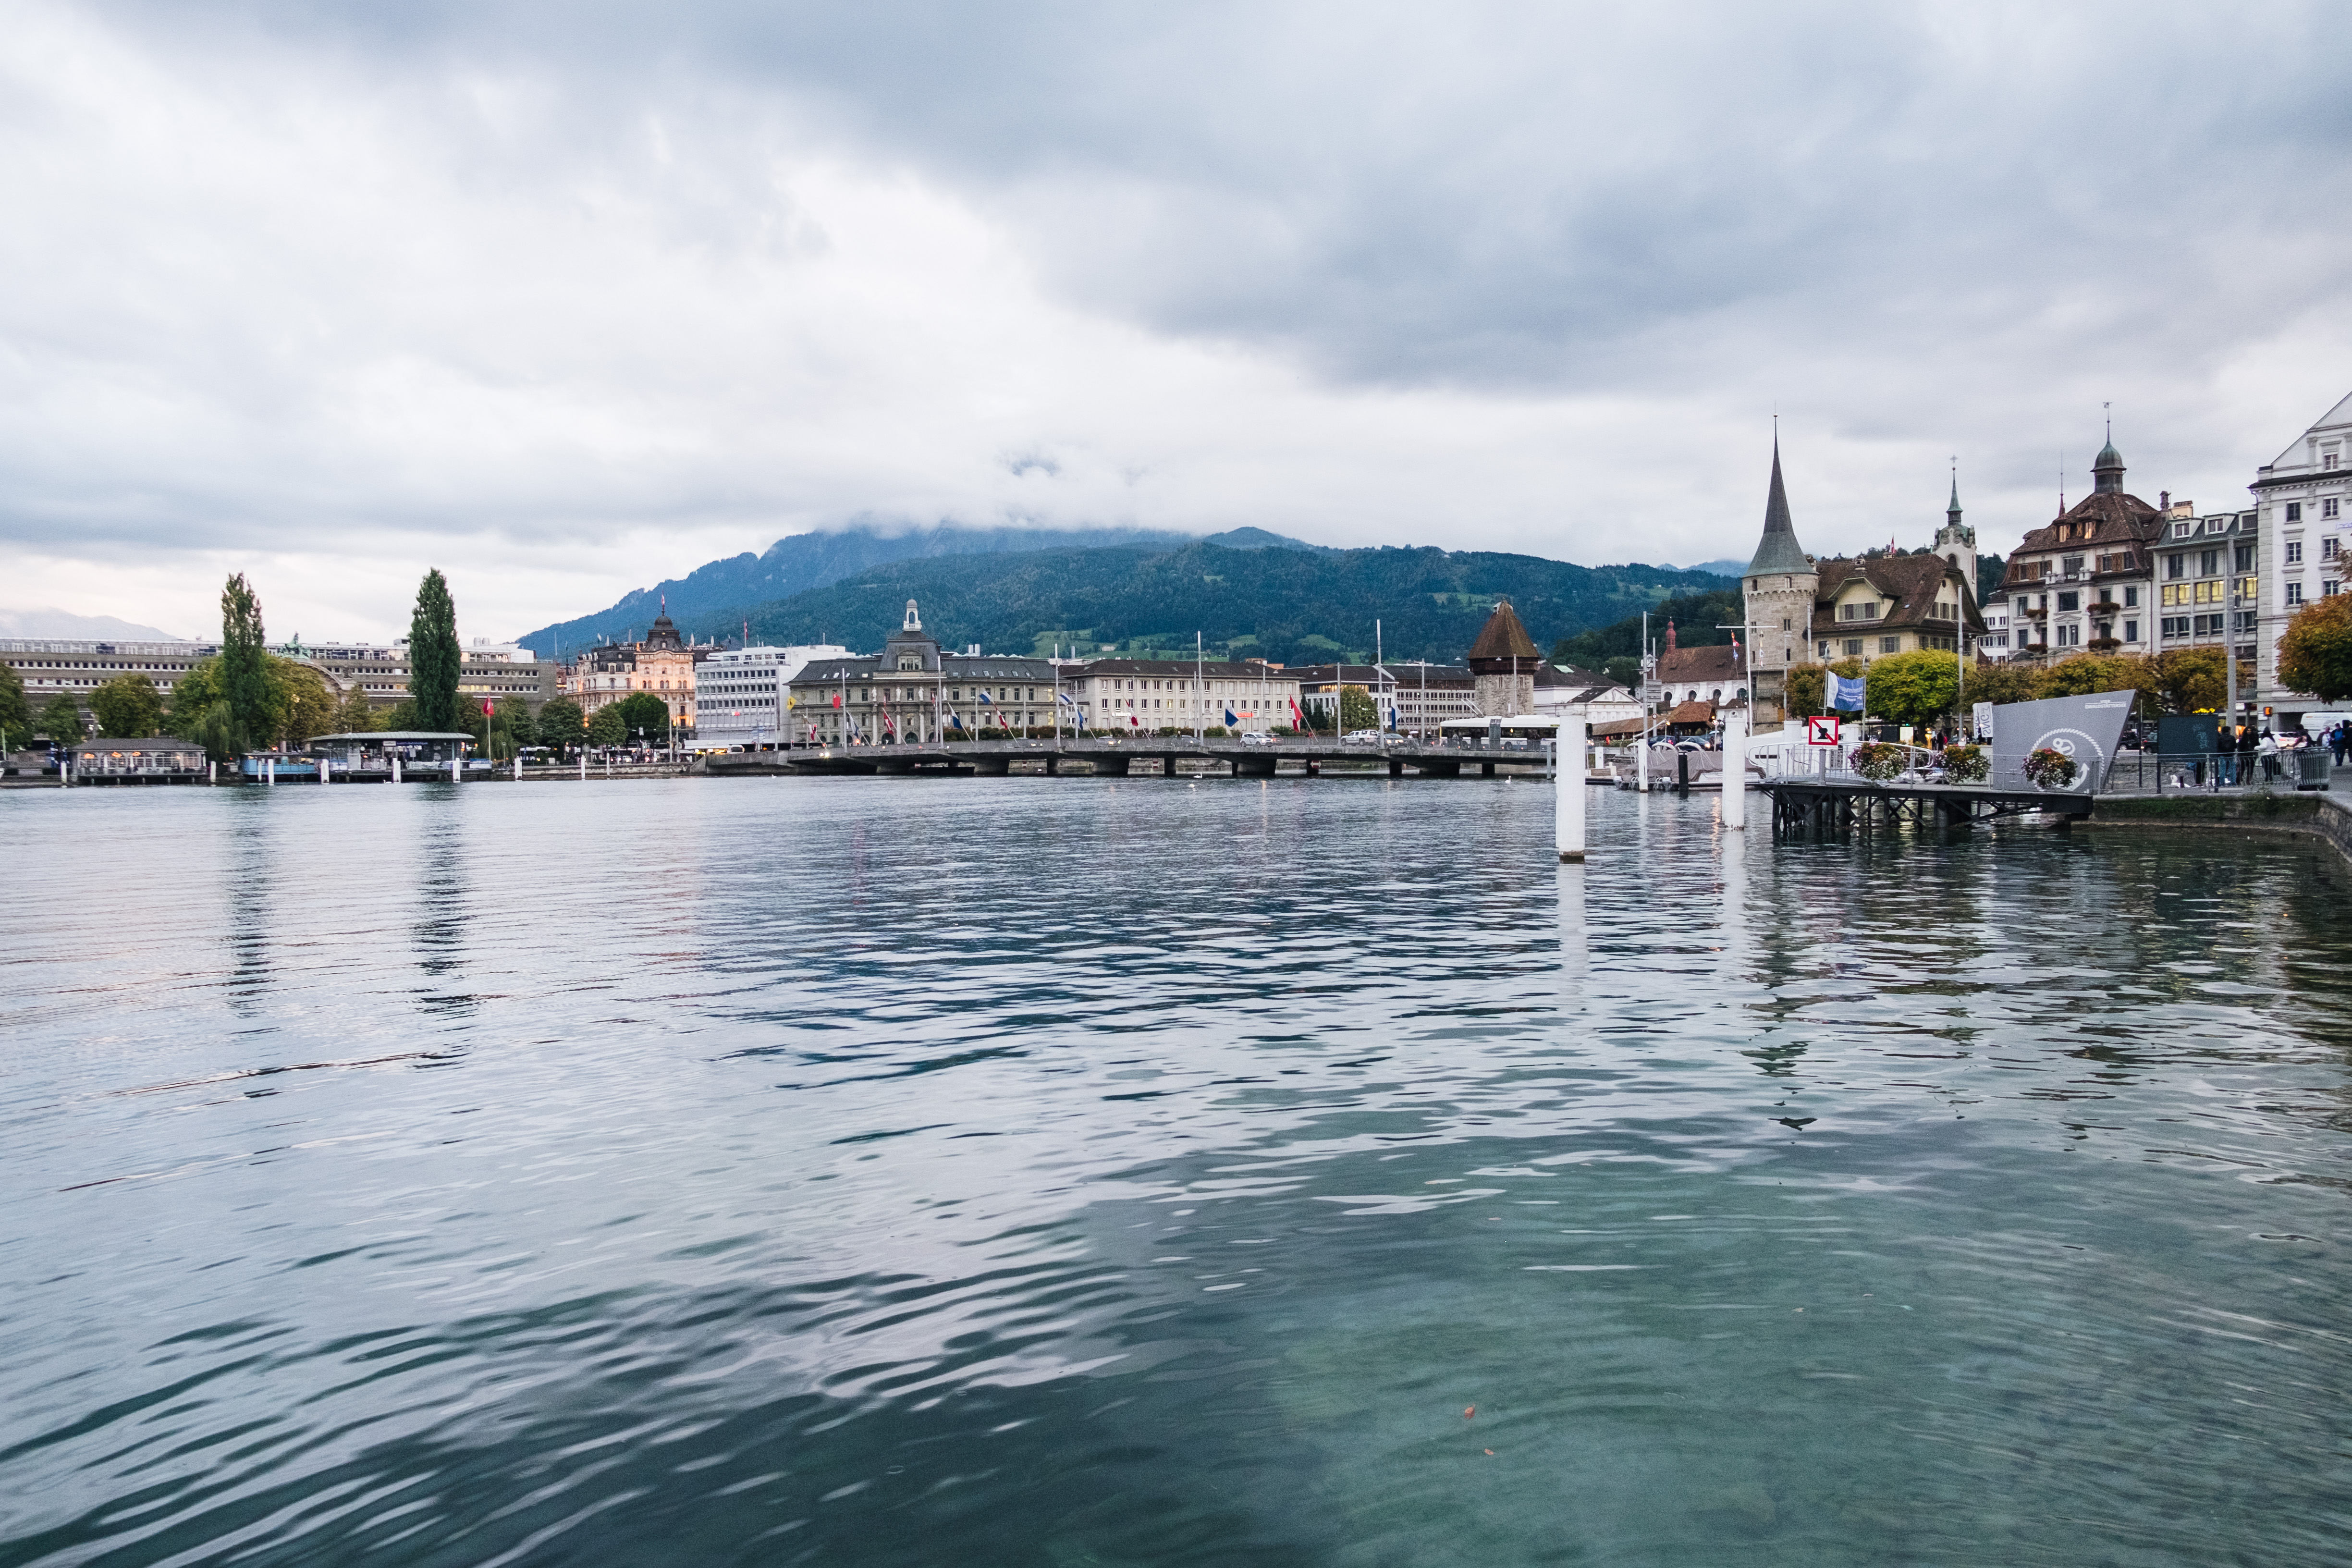 Check out: A whirlwind tour of Lucerne, Switzerland